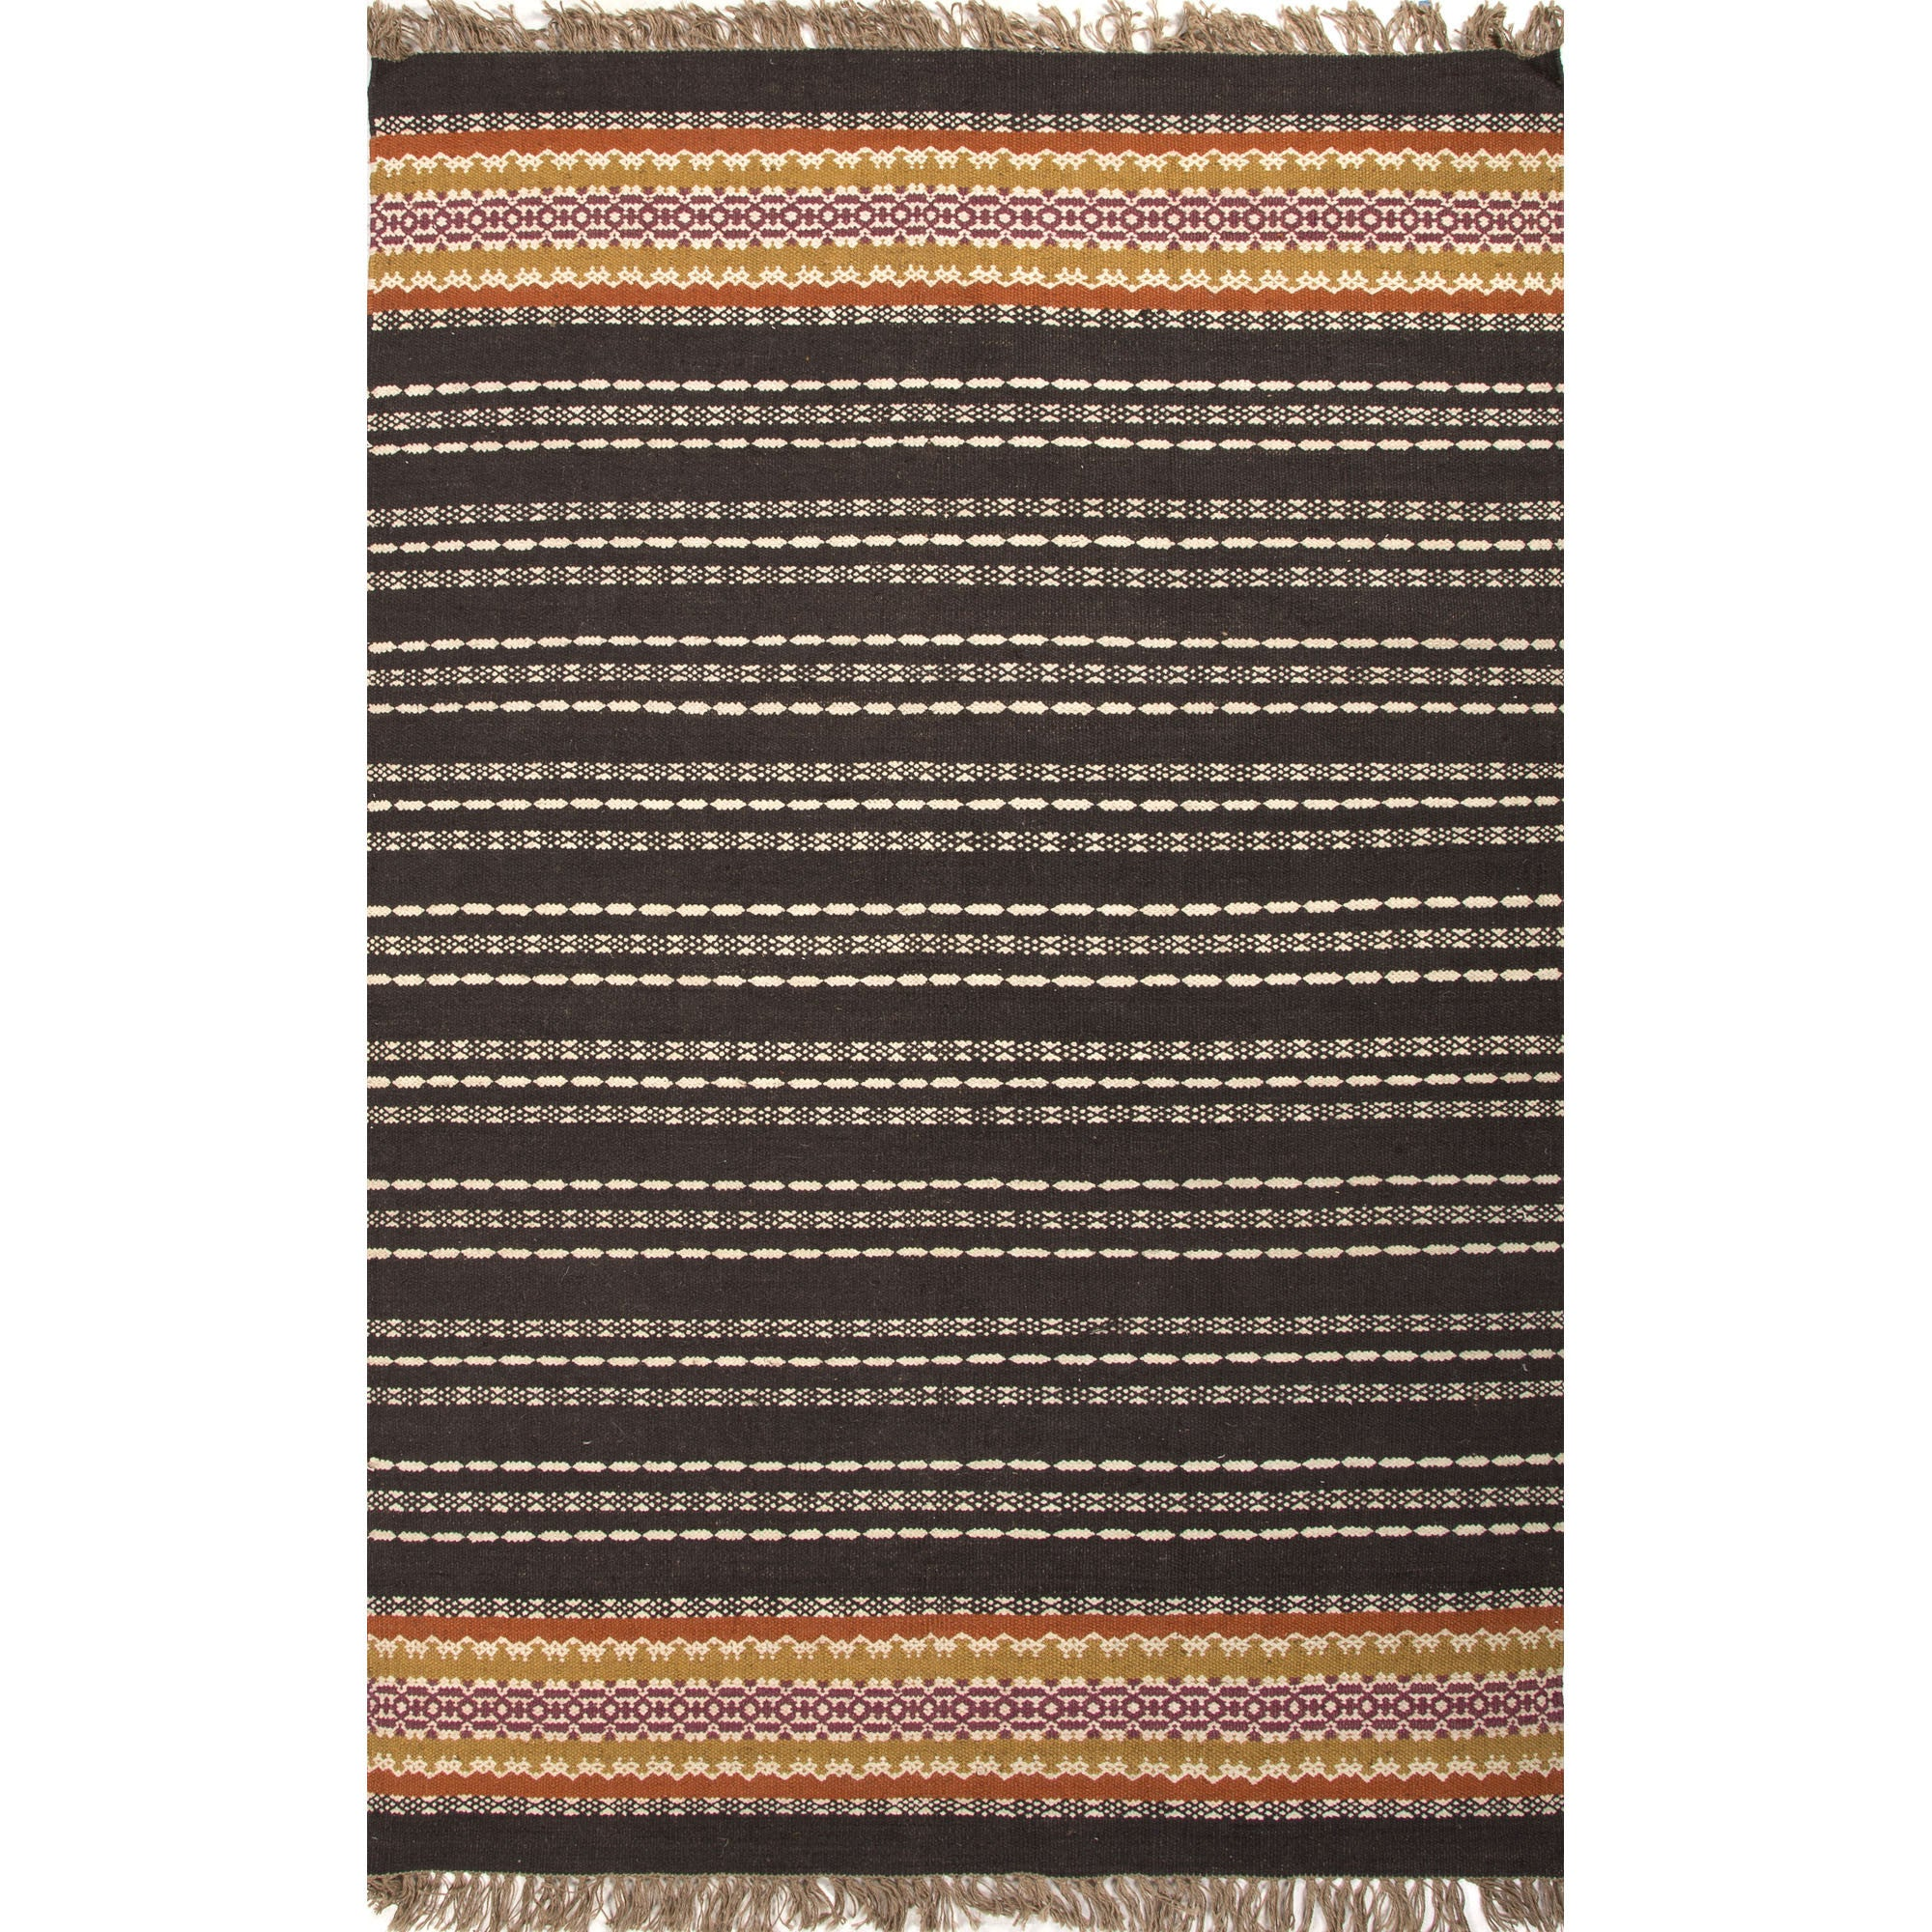 Jaipur rugs flatweave stripe pattern black red jute and for Red and white striped area rug